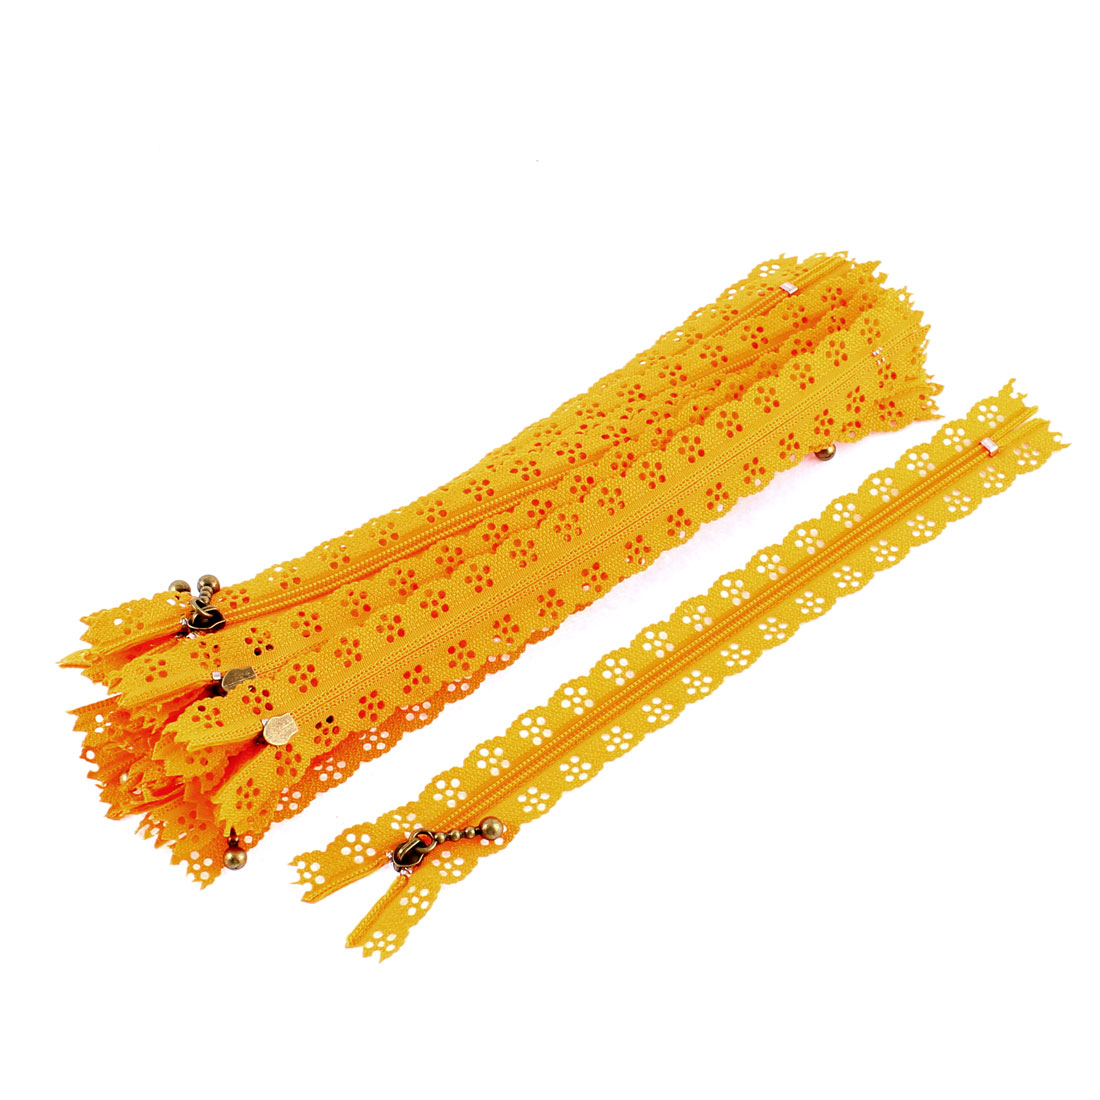 Nylon Coil Zippers Lace Edge Tailor Bag Clothing DIY Craft Orange 20cm 20 Pcs